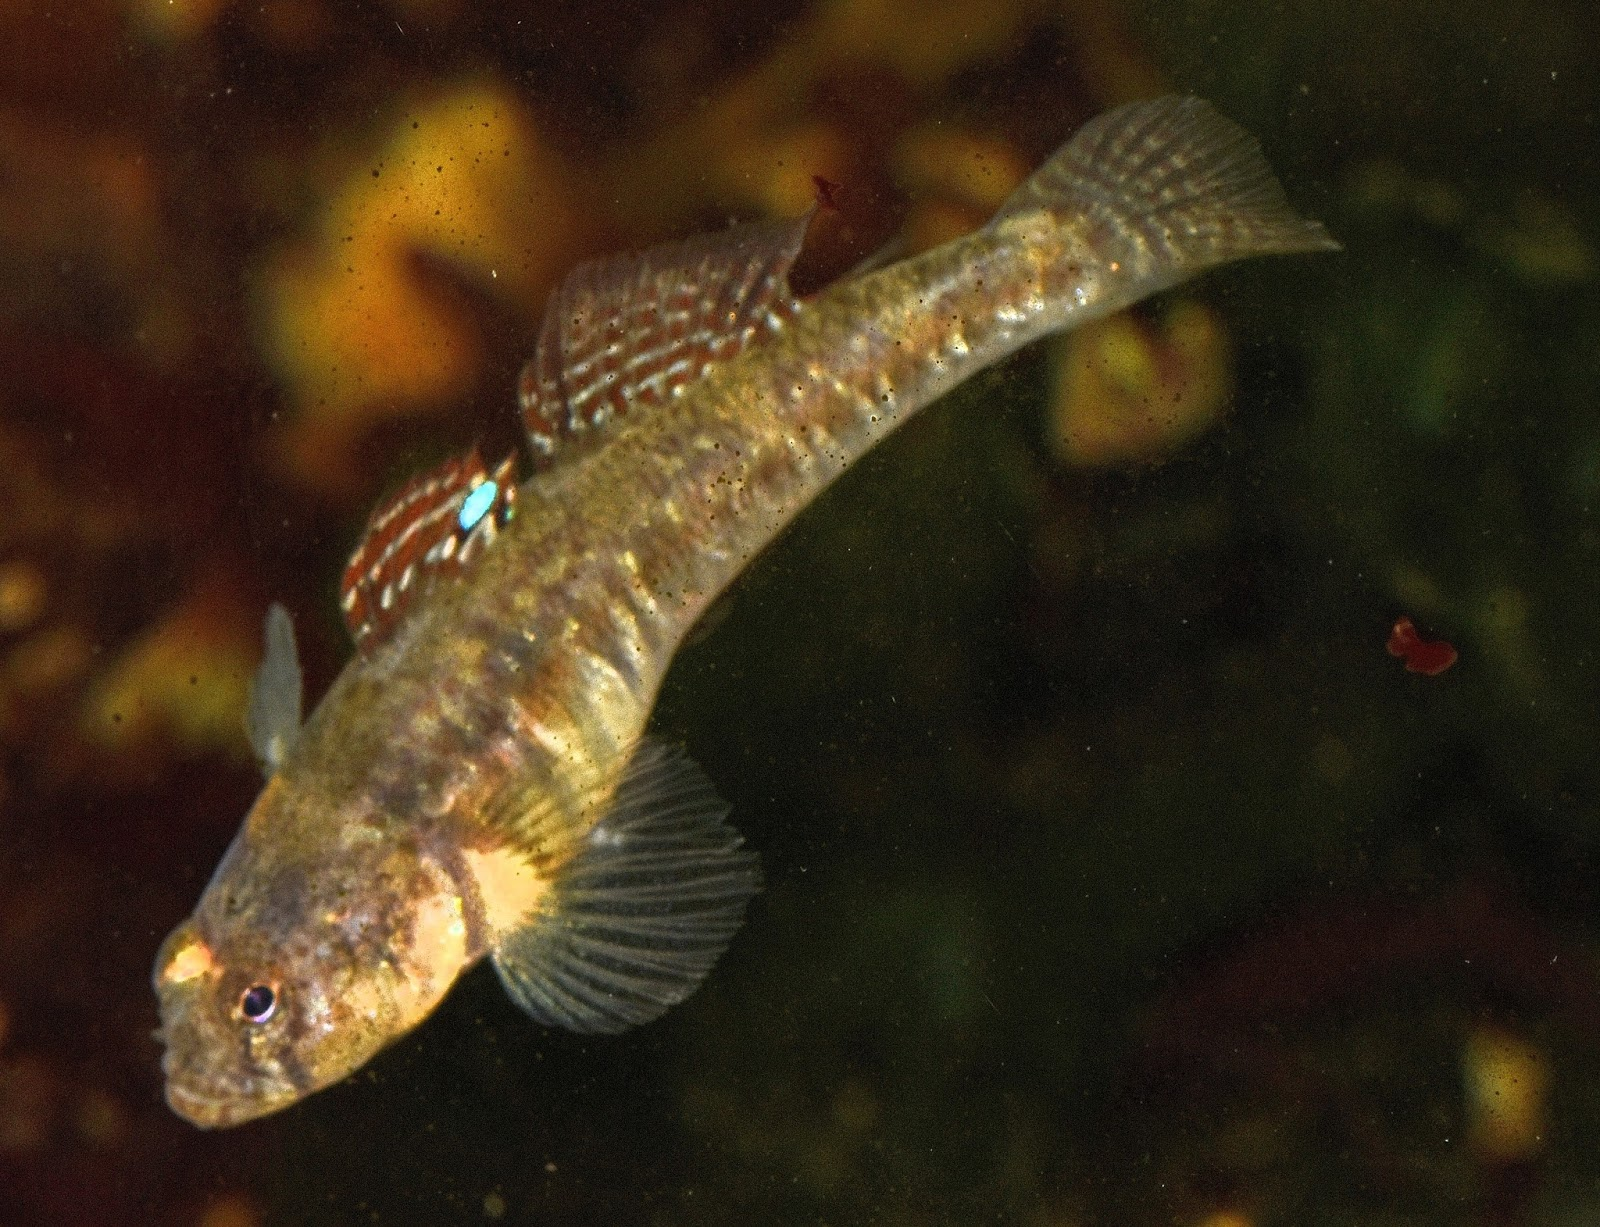 British Seashore Amp Rock Pool Life Common Goby